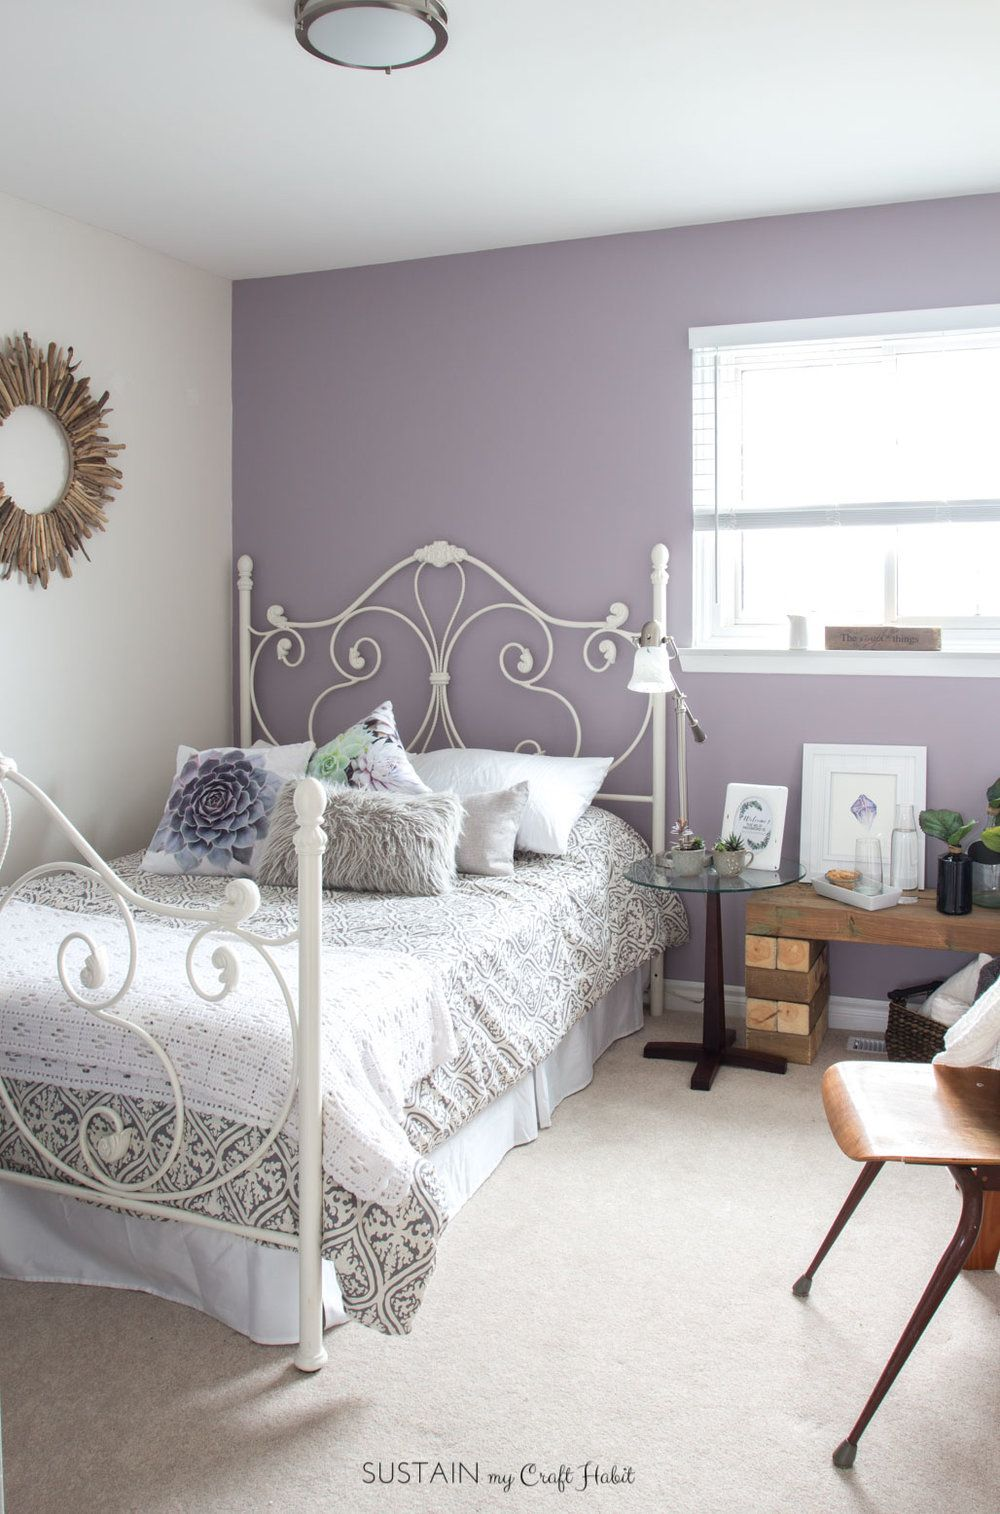 These 13 Diy Guest Room Decor